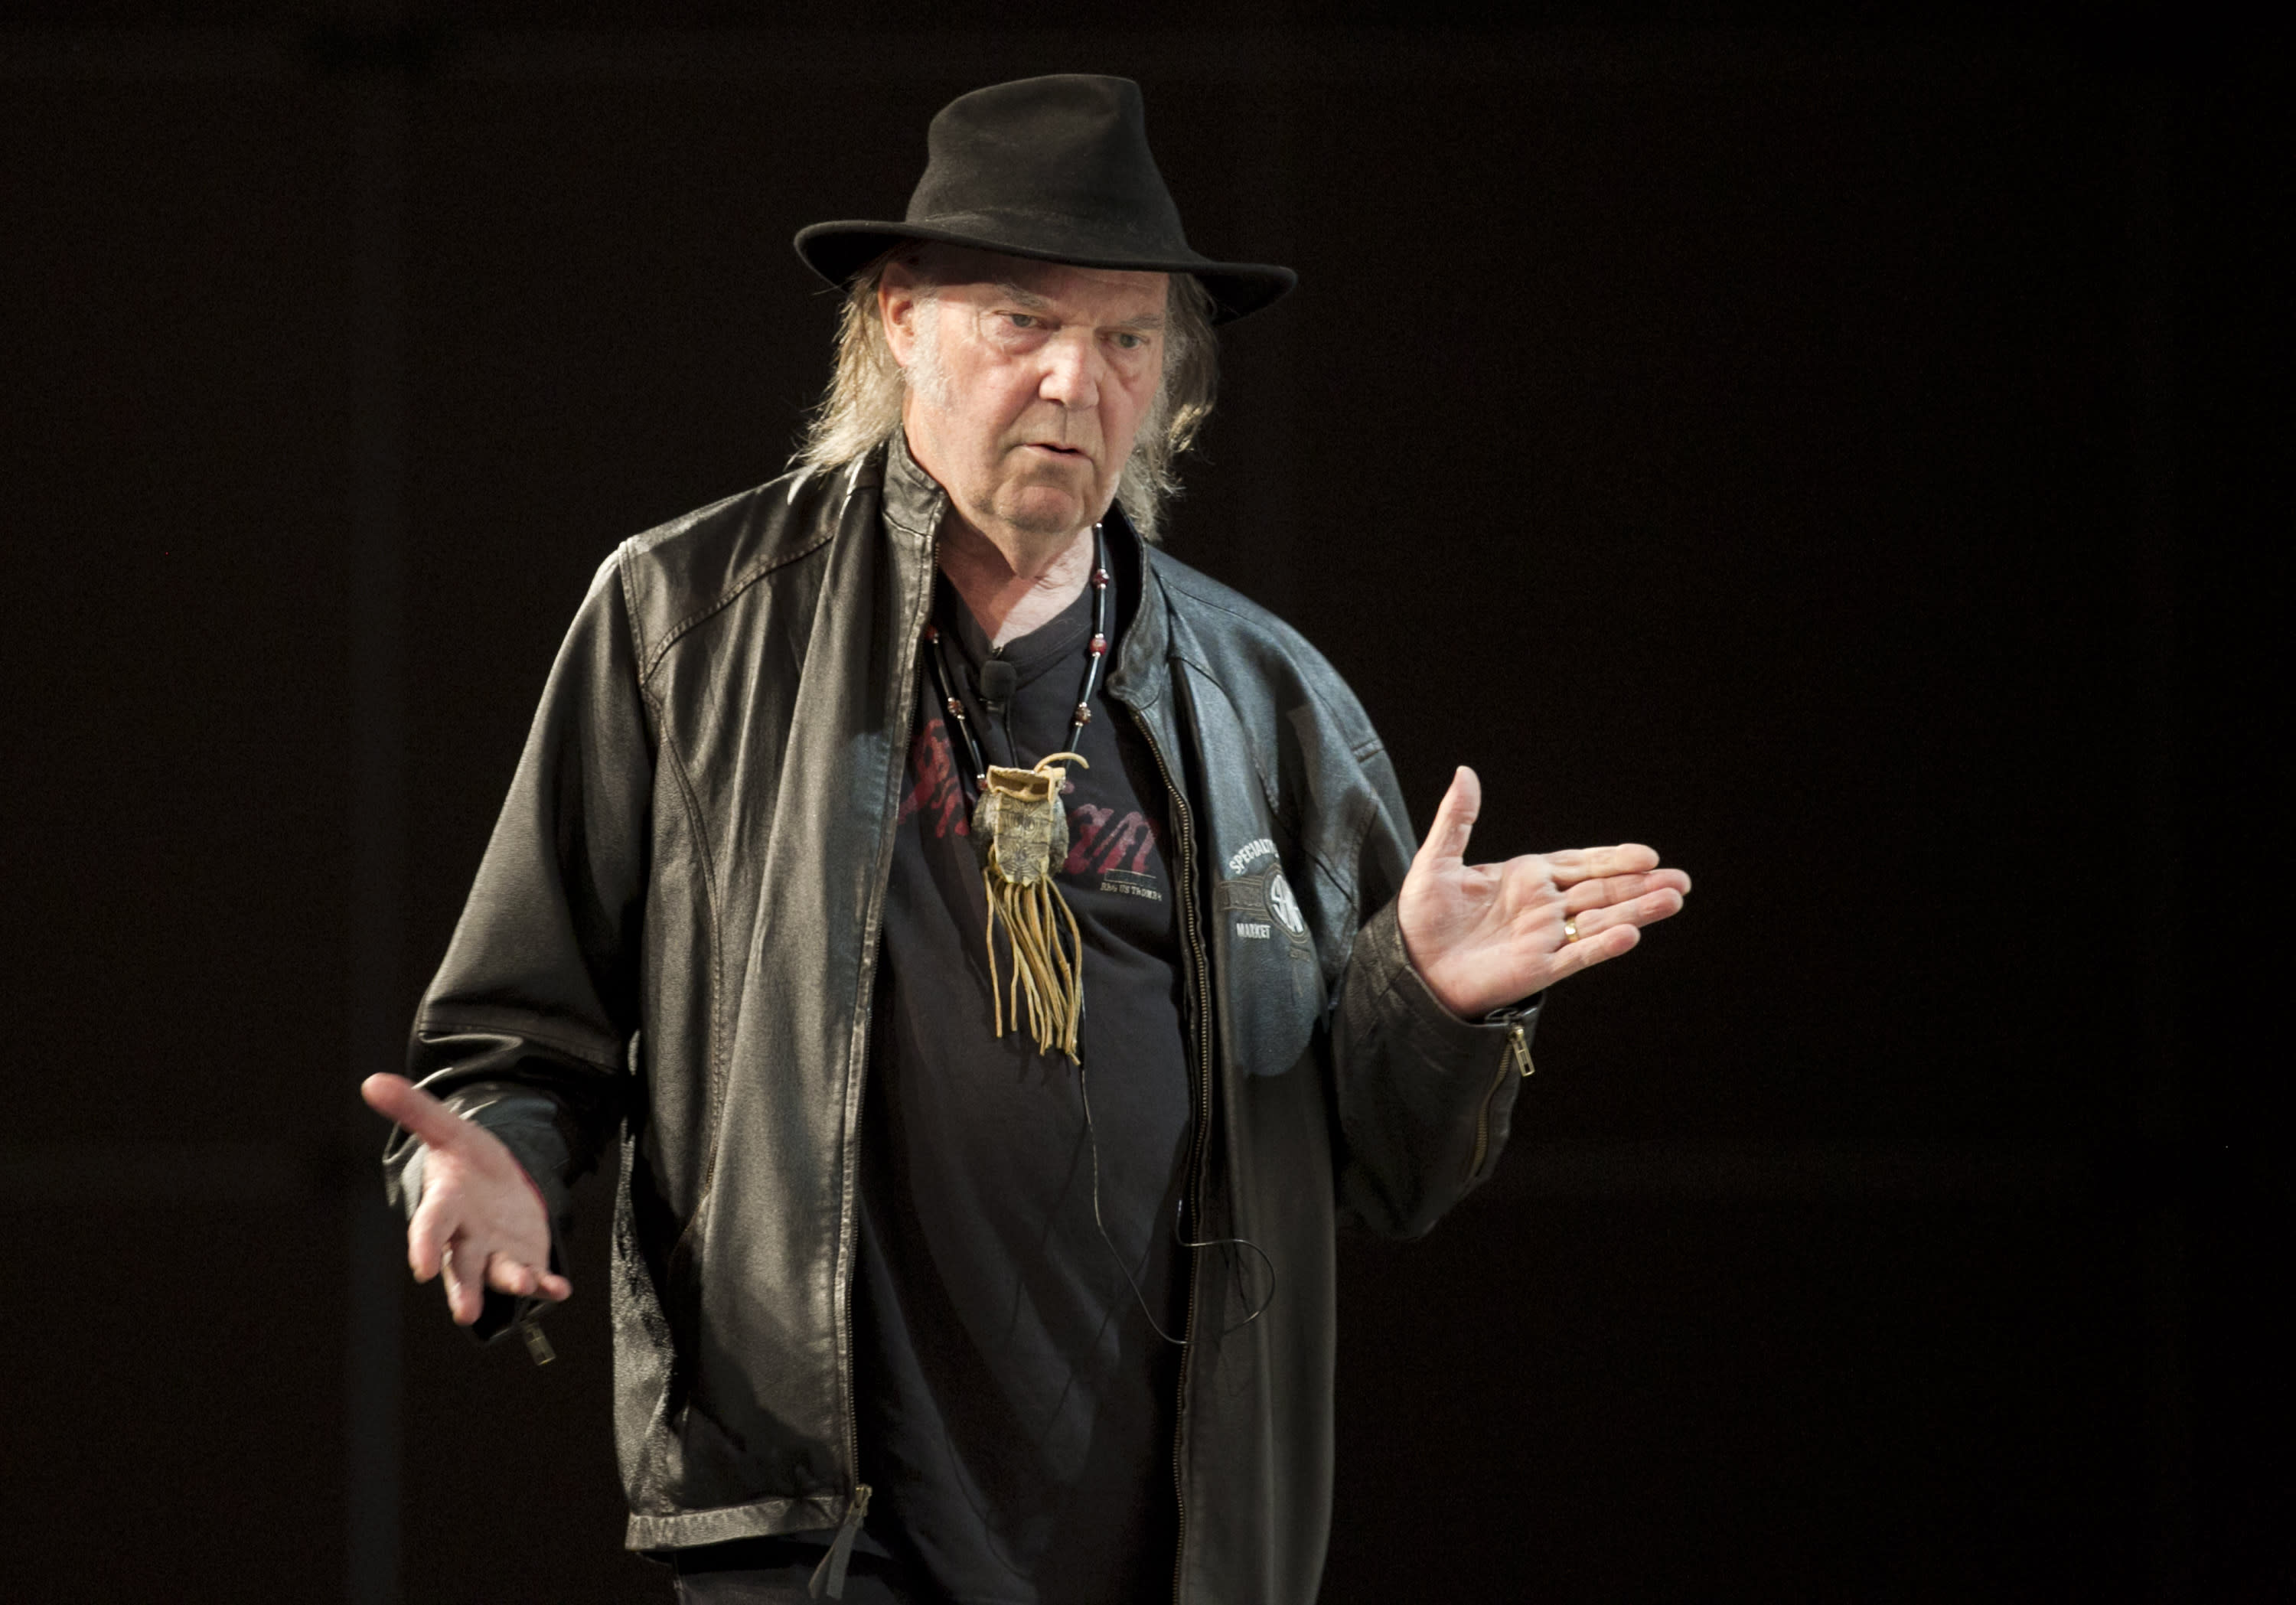 Neil Young brings his digital music vision to SXSW